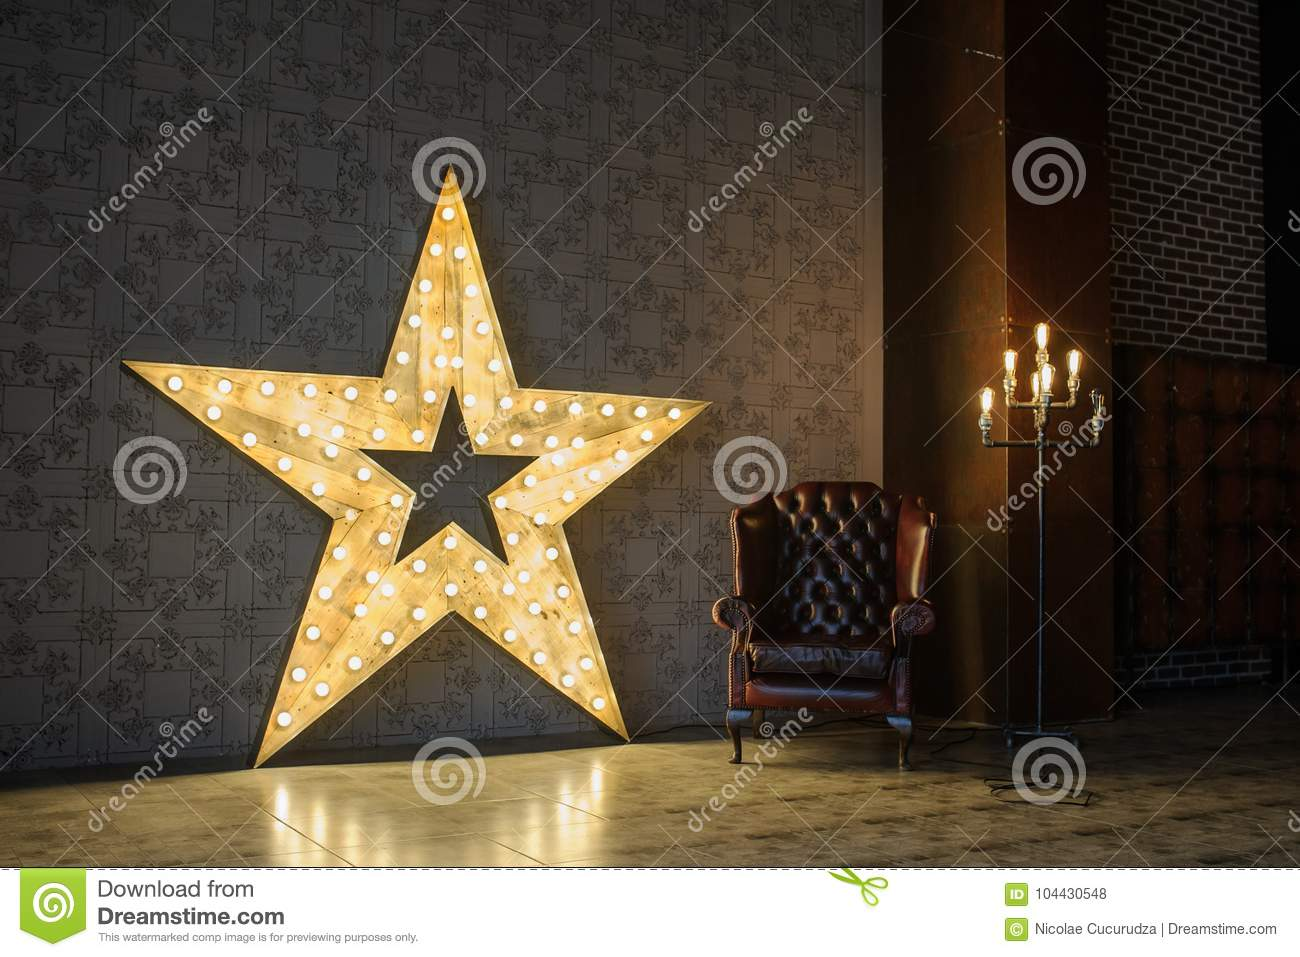 Star Sessions Photos - Free & Royalty-Free Stock Photos from ...